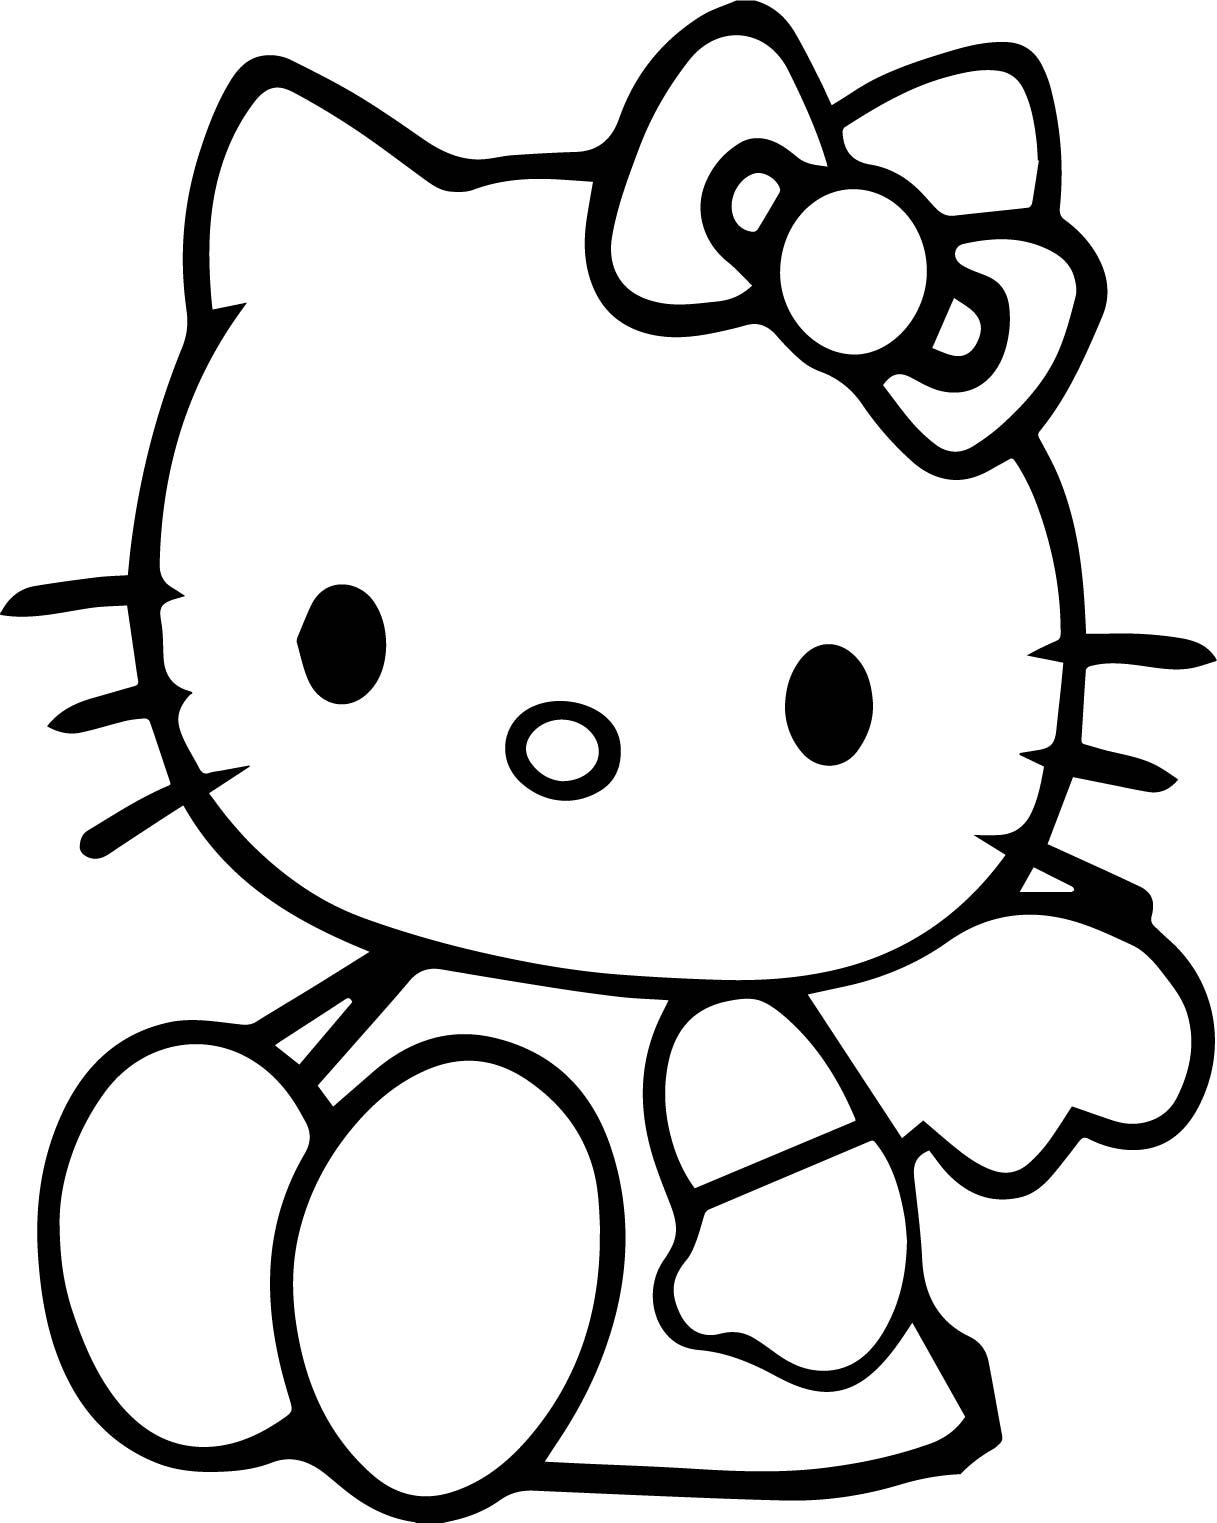 Sitdown Hello Kitty Coloring Page